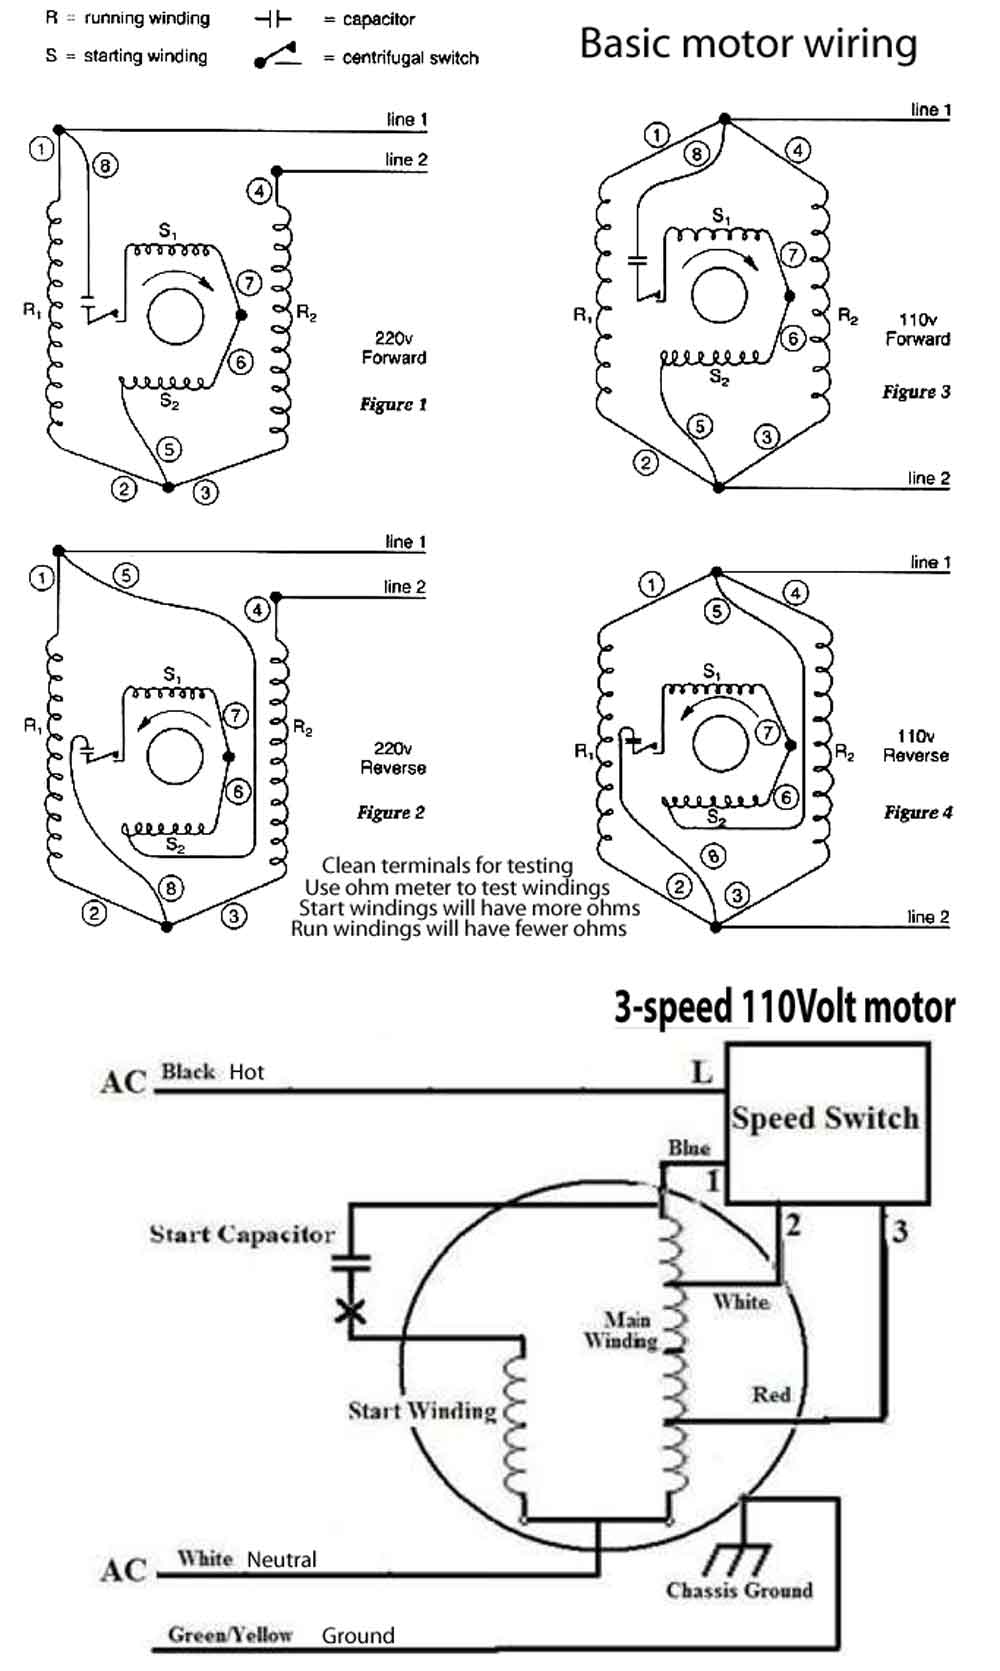 Motor wiring 500 how to wire 3 speed fan switch ceiling fan internal wiring diagram at mifinder.co